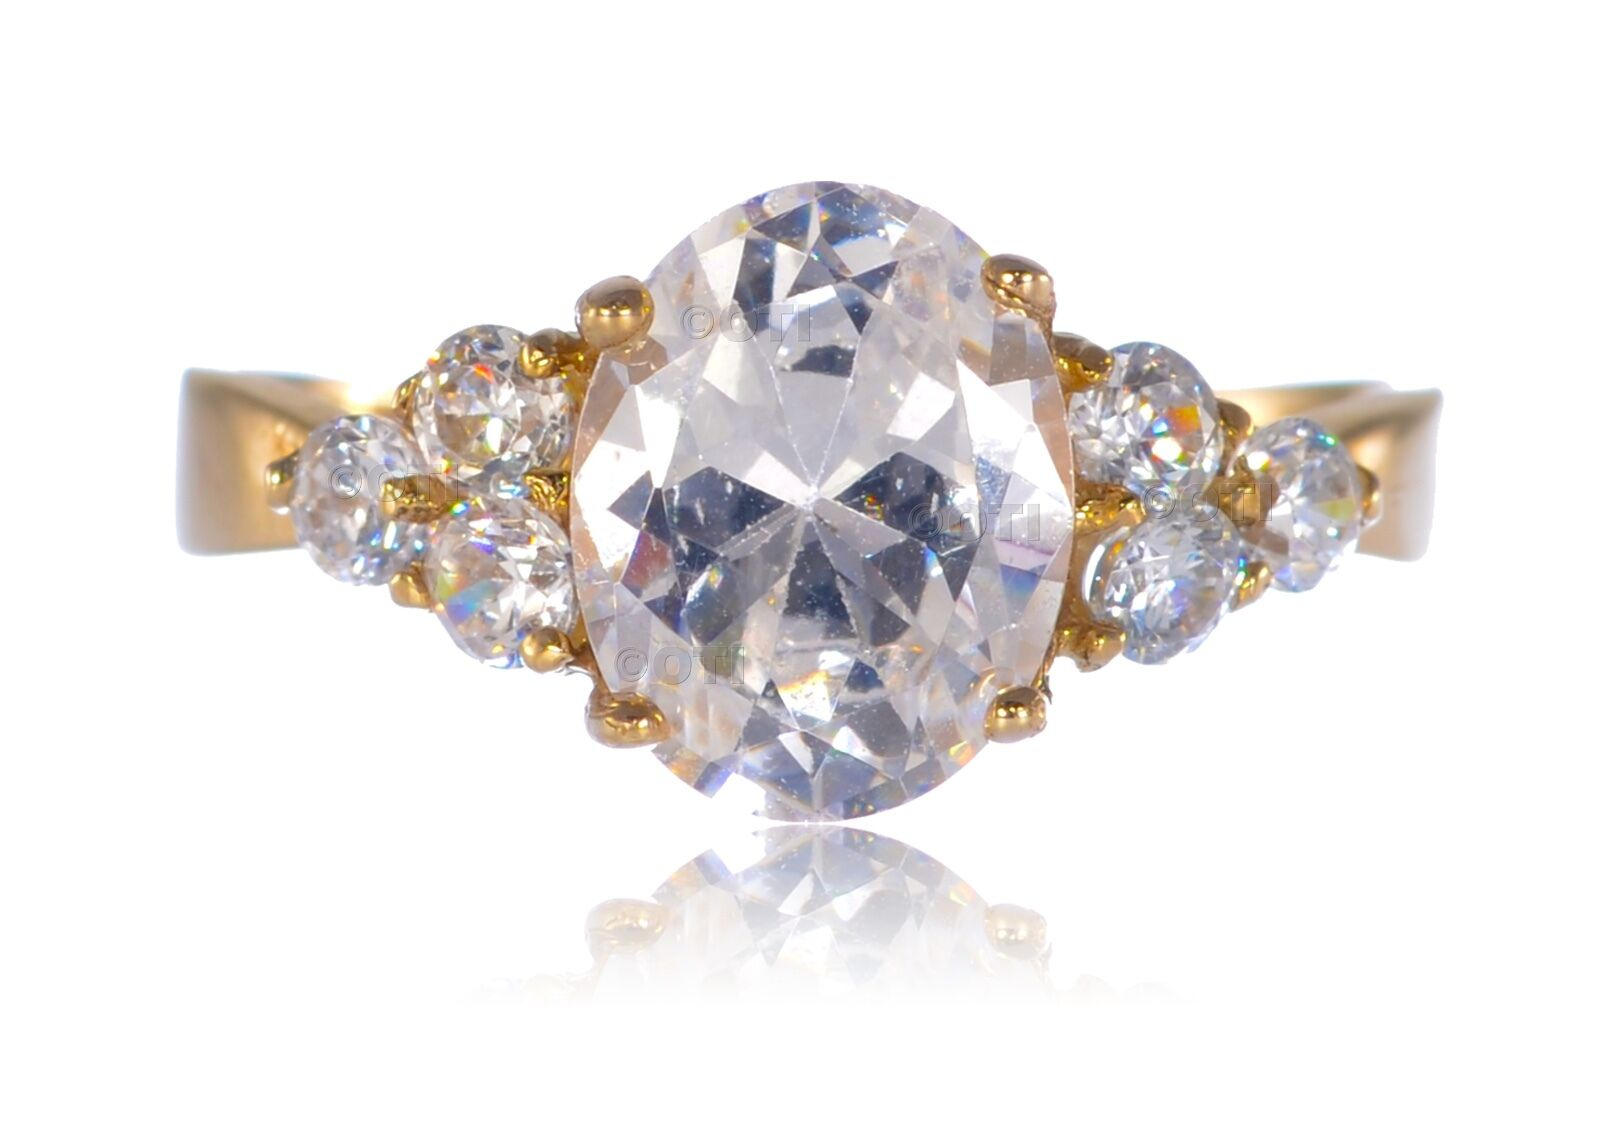 14K Solid Genuine Yellow gold Oval Cut Engagement Wedding CZ 5.00ct Ring